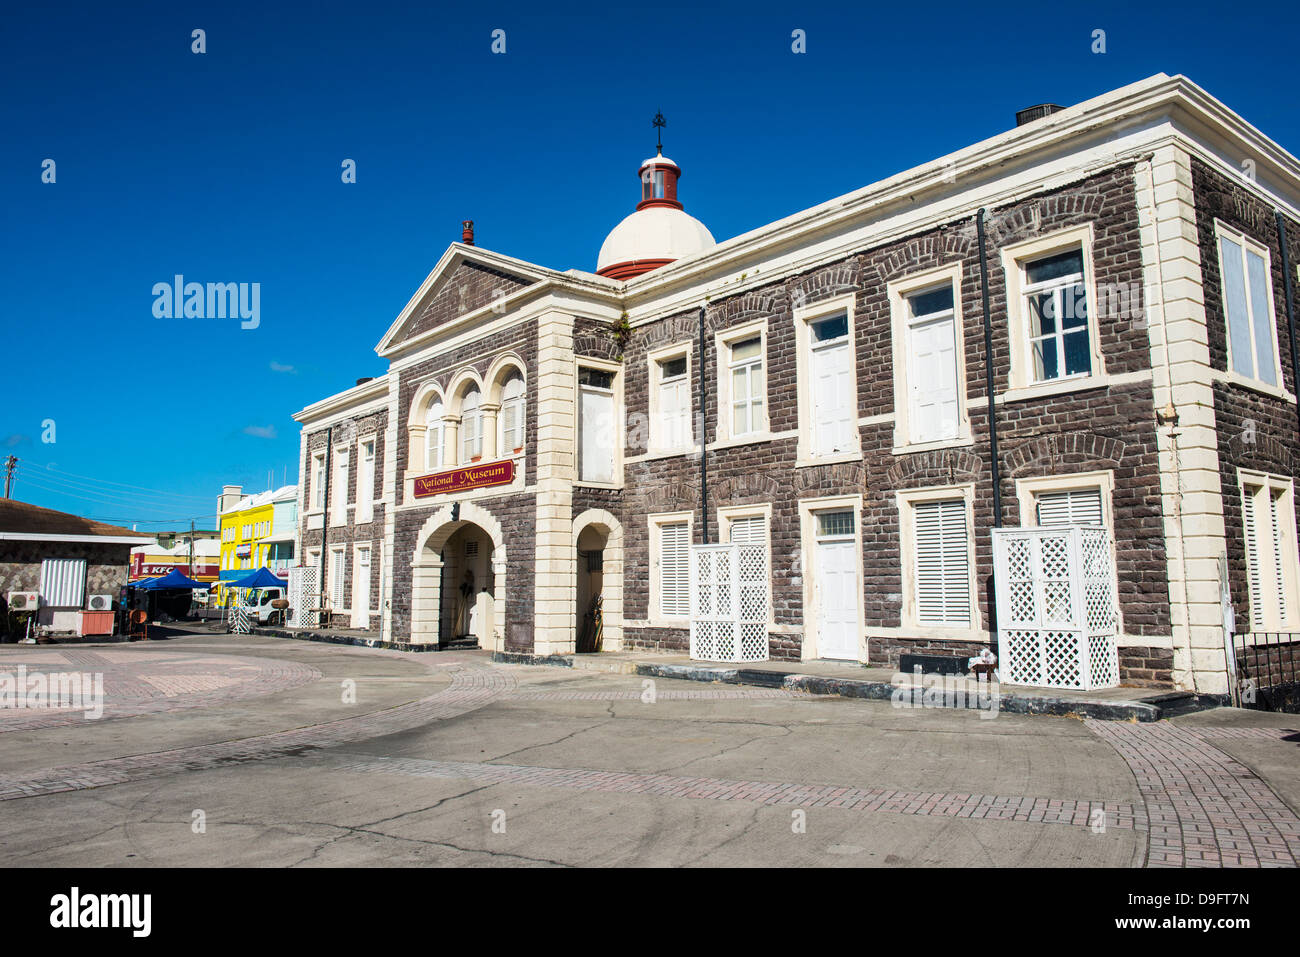 The renovated pier in Basseterre, St. Kitts, capital of St. Kitts and Nevis, Leeward Islands, West Indies, Caribbean - Stock Image